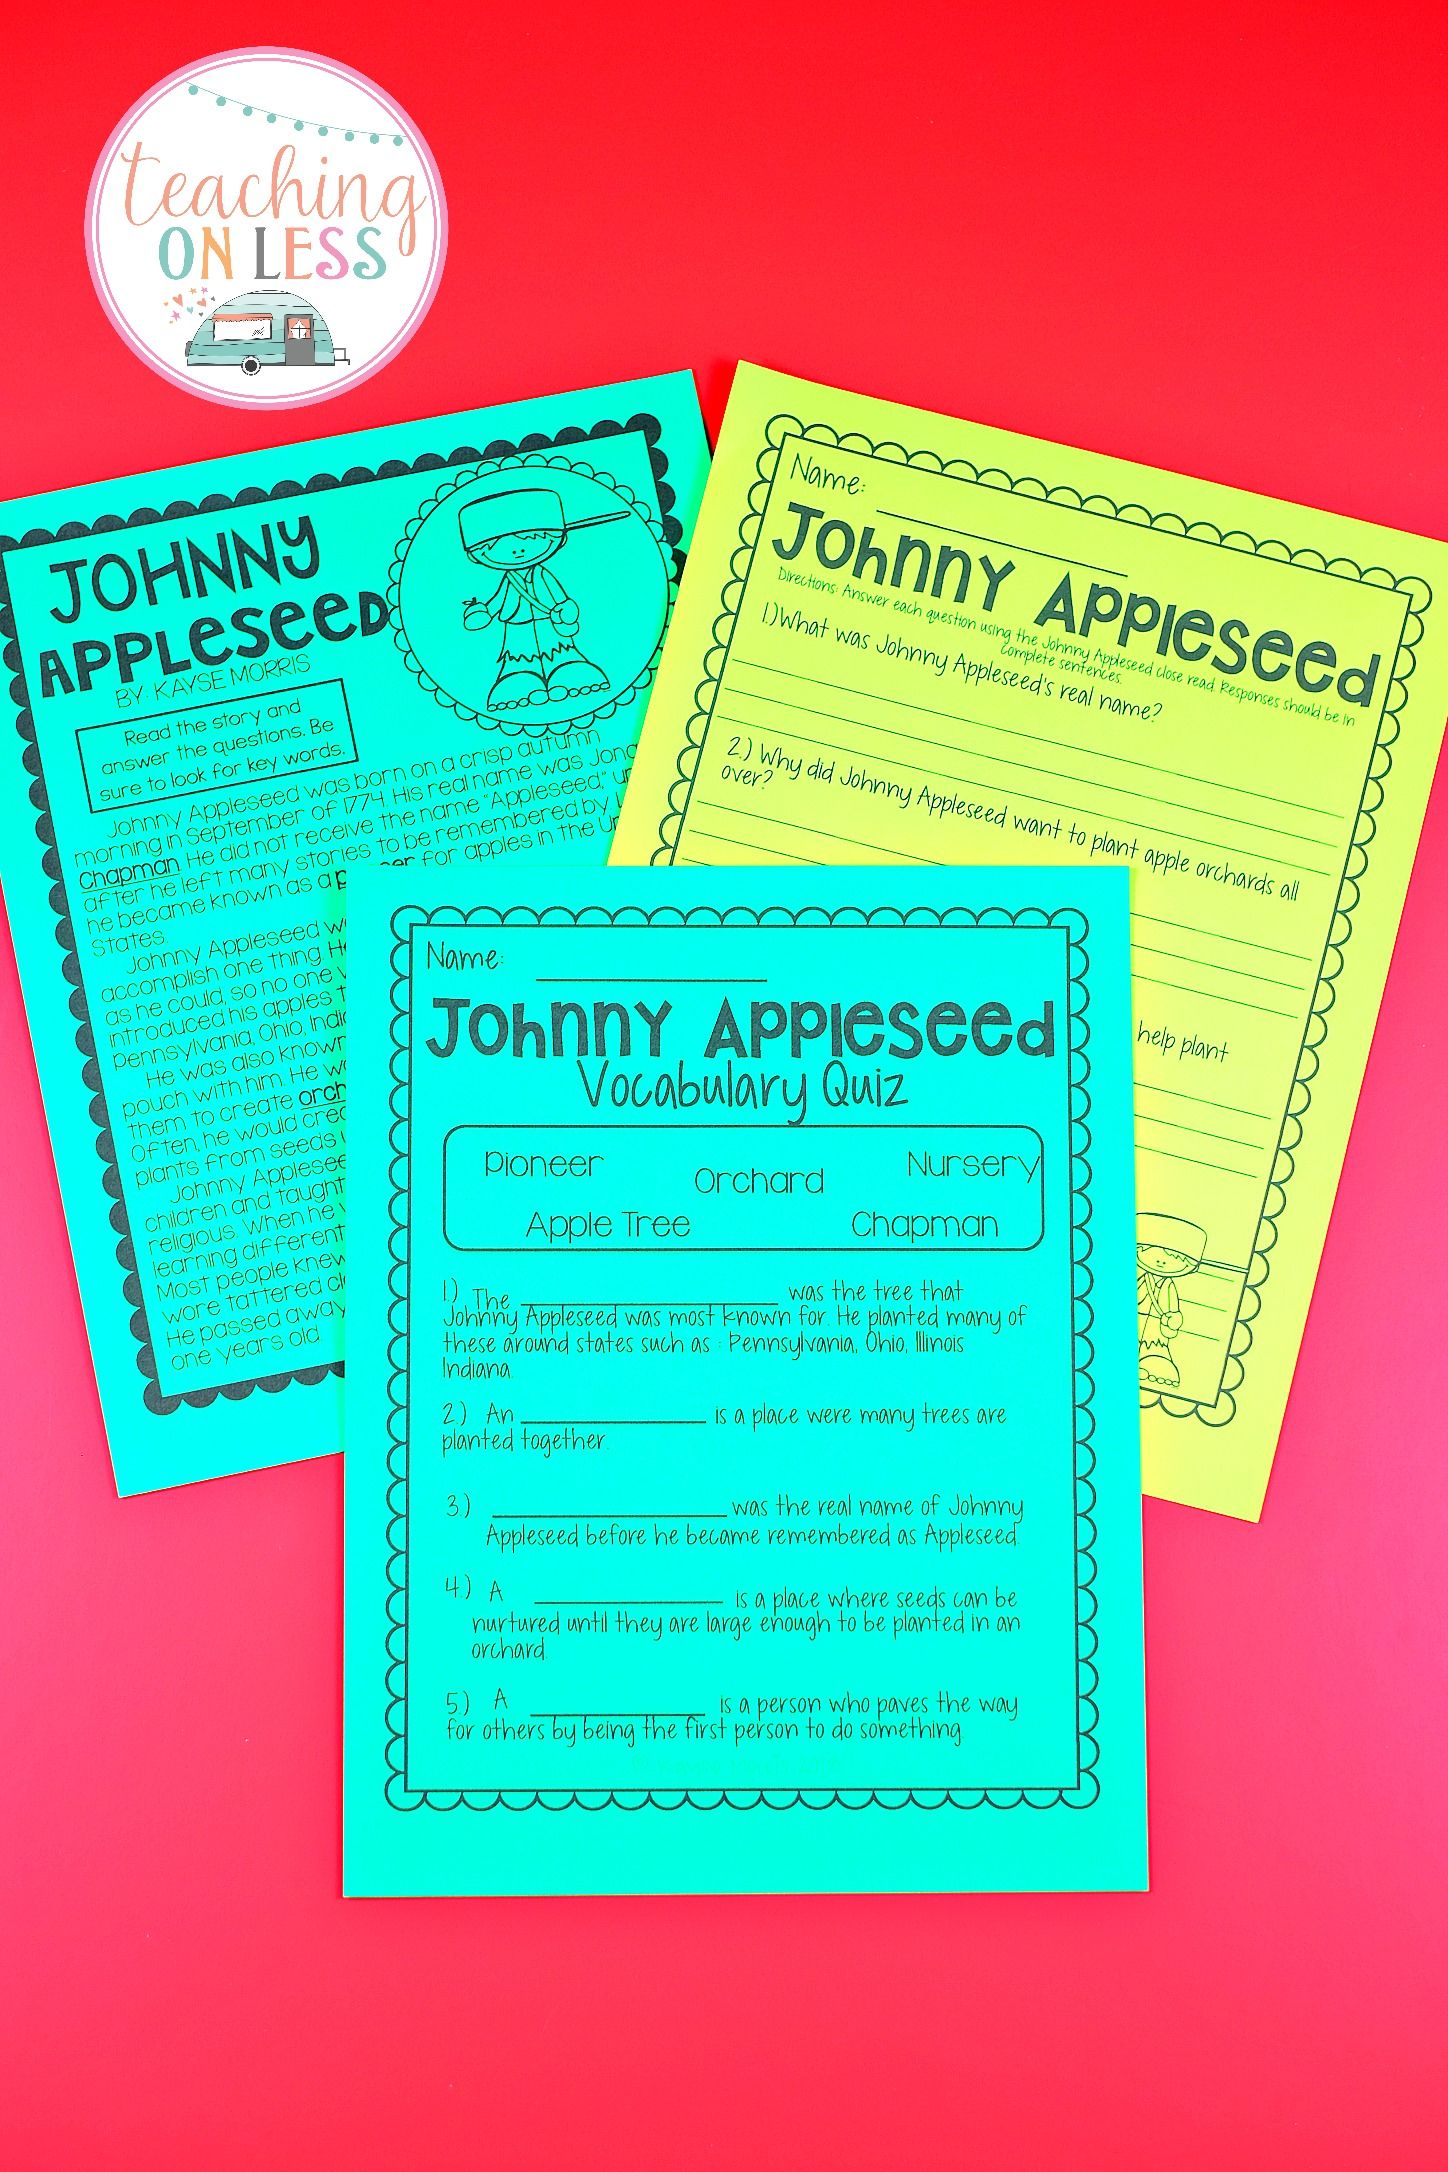 Fun Things To Do On Johnny Appleseed Day